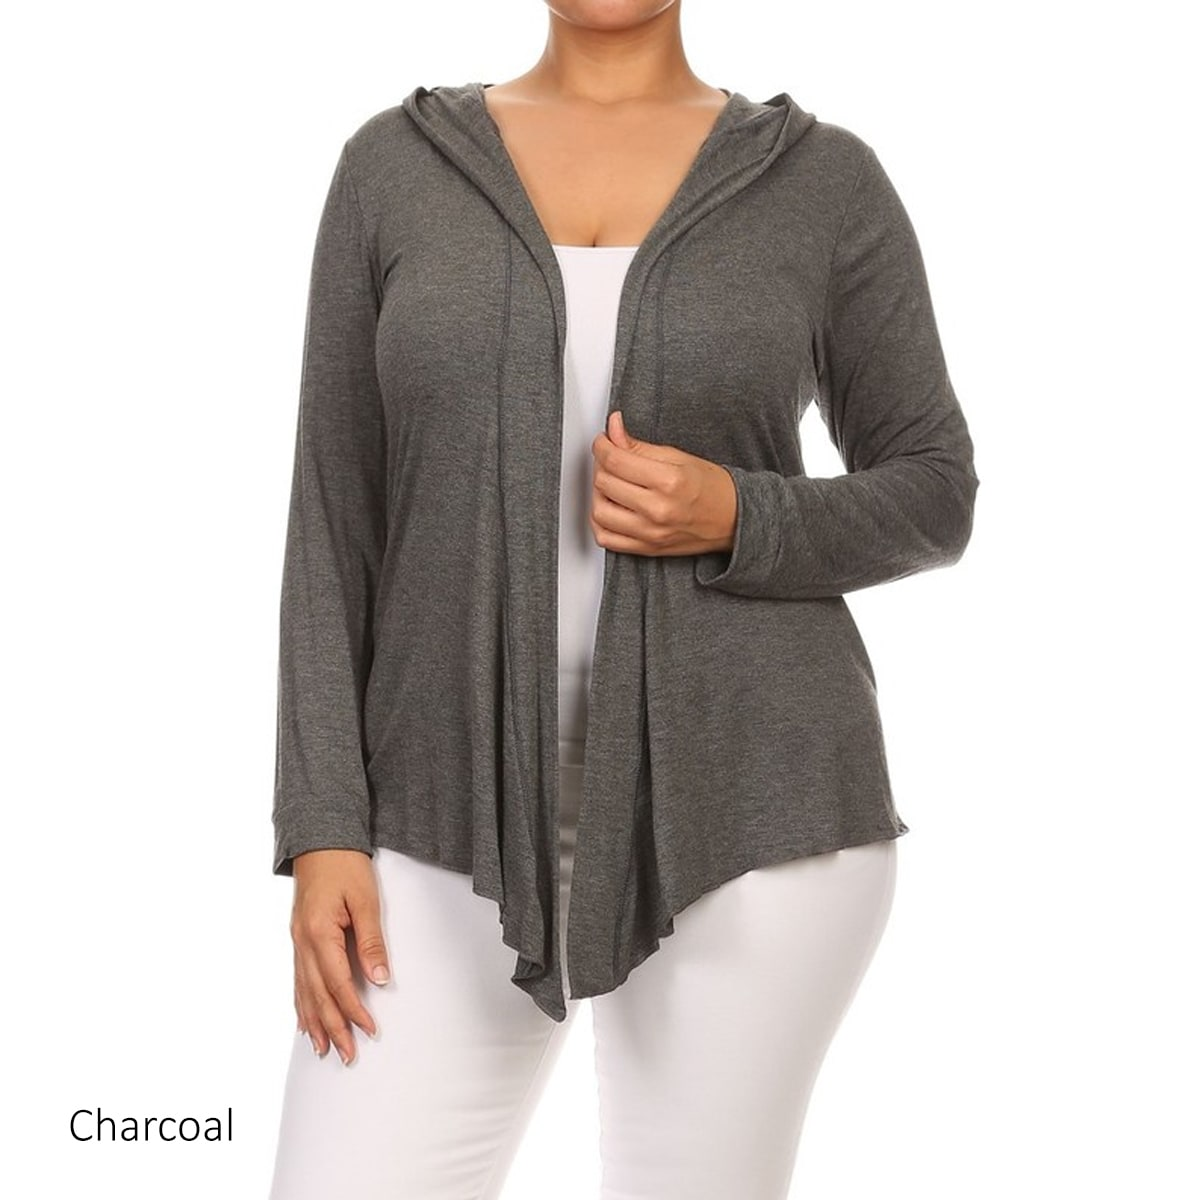 f64067103e1 Women s Plus Size Long-sleeved Open-front Hooded Cardigan